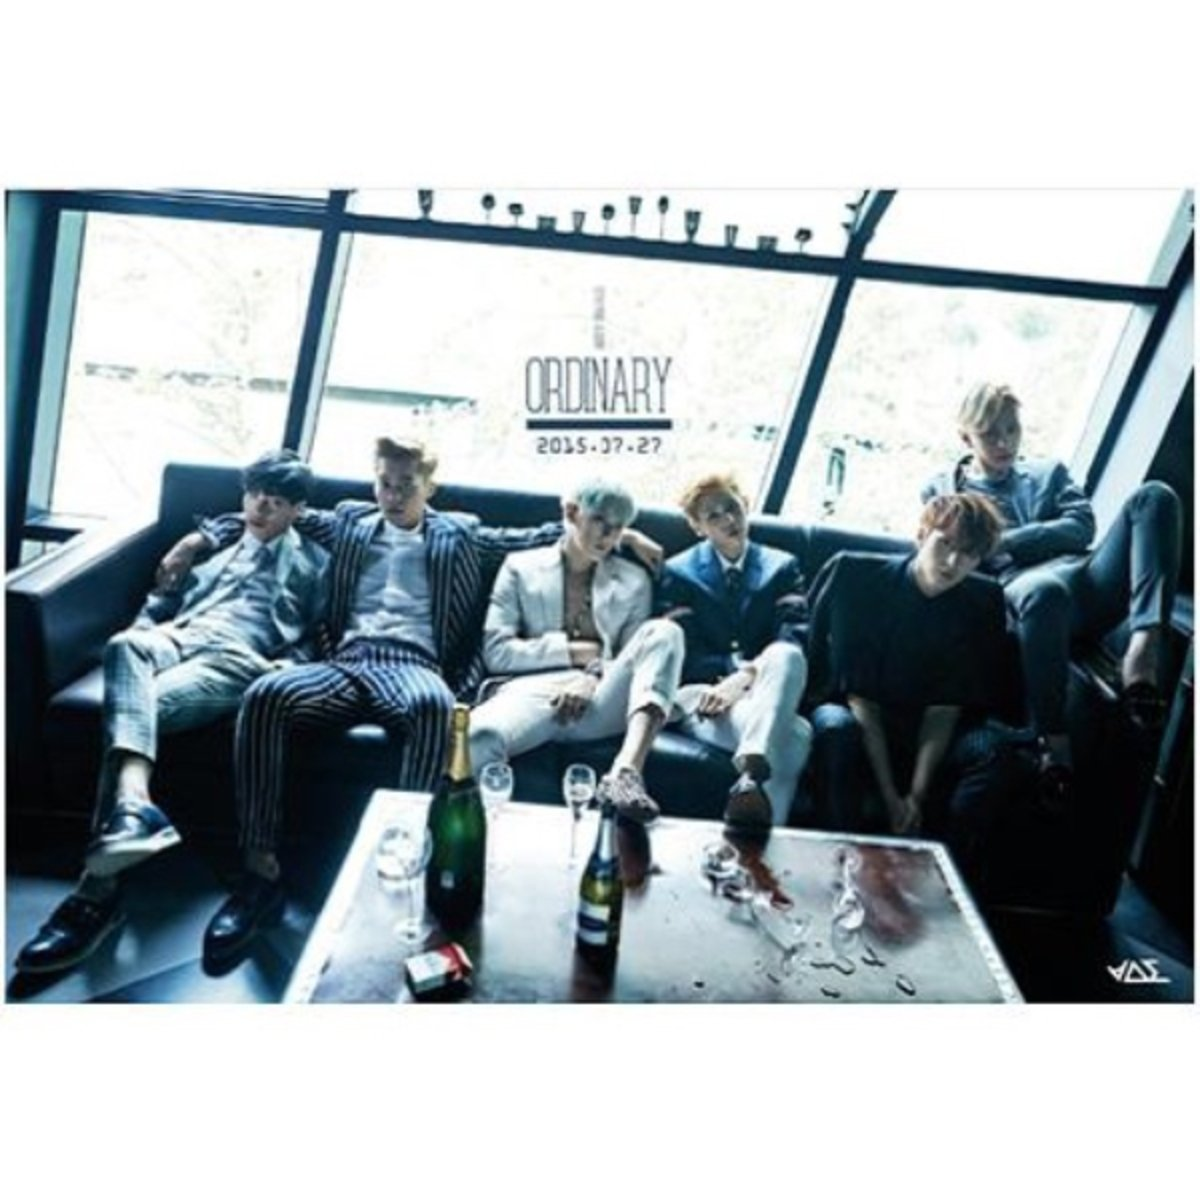 Beast - Mini Album Vol.8 [Ordinary] (A Ver.)_GD00020503